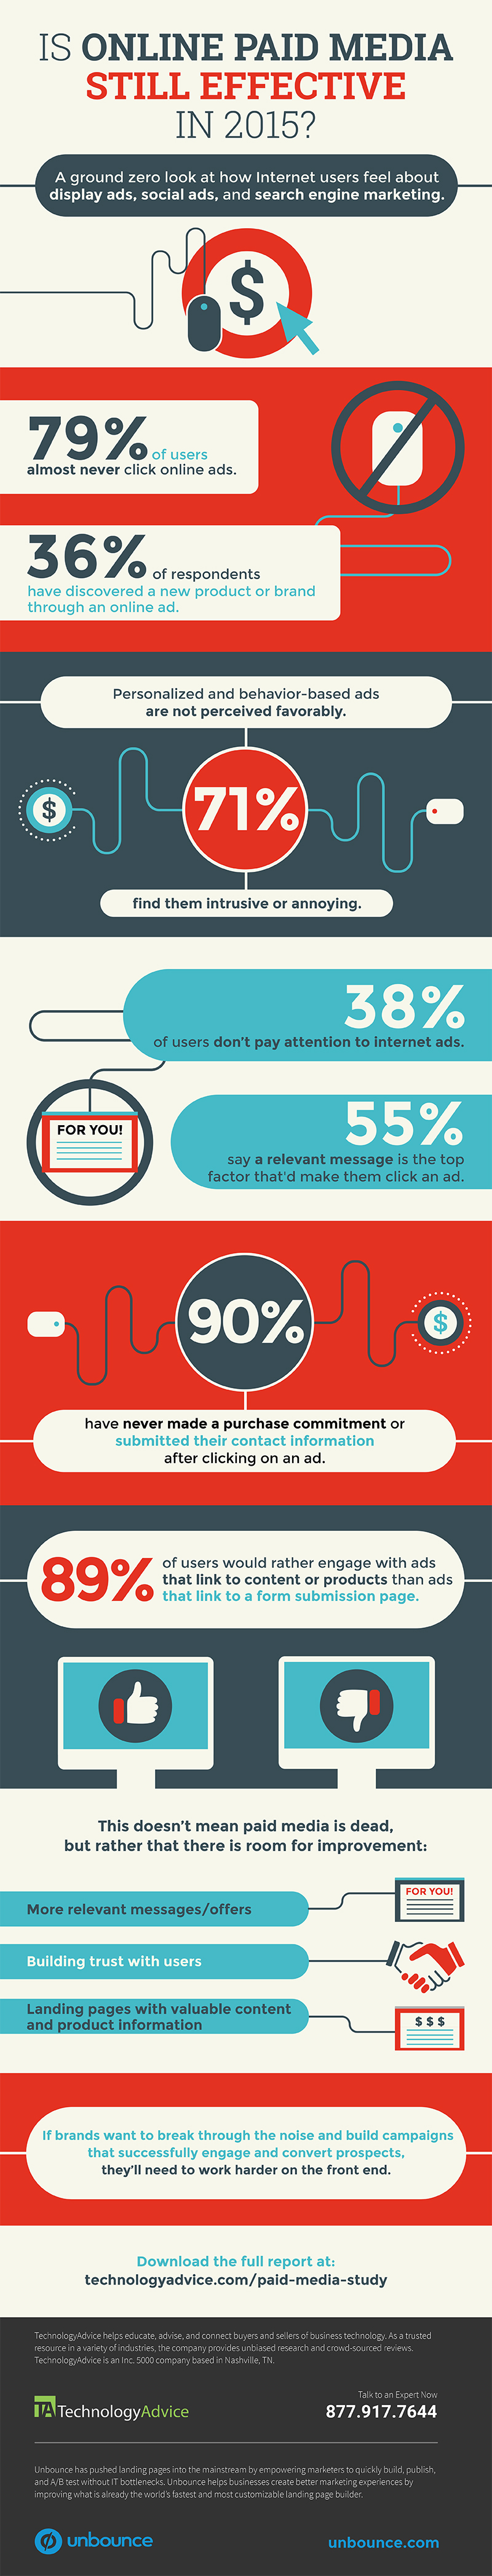 technologyadvice-ppc-infographic-v4